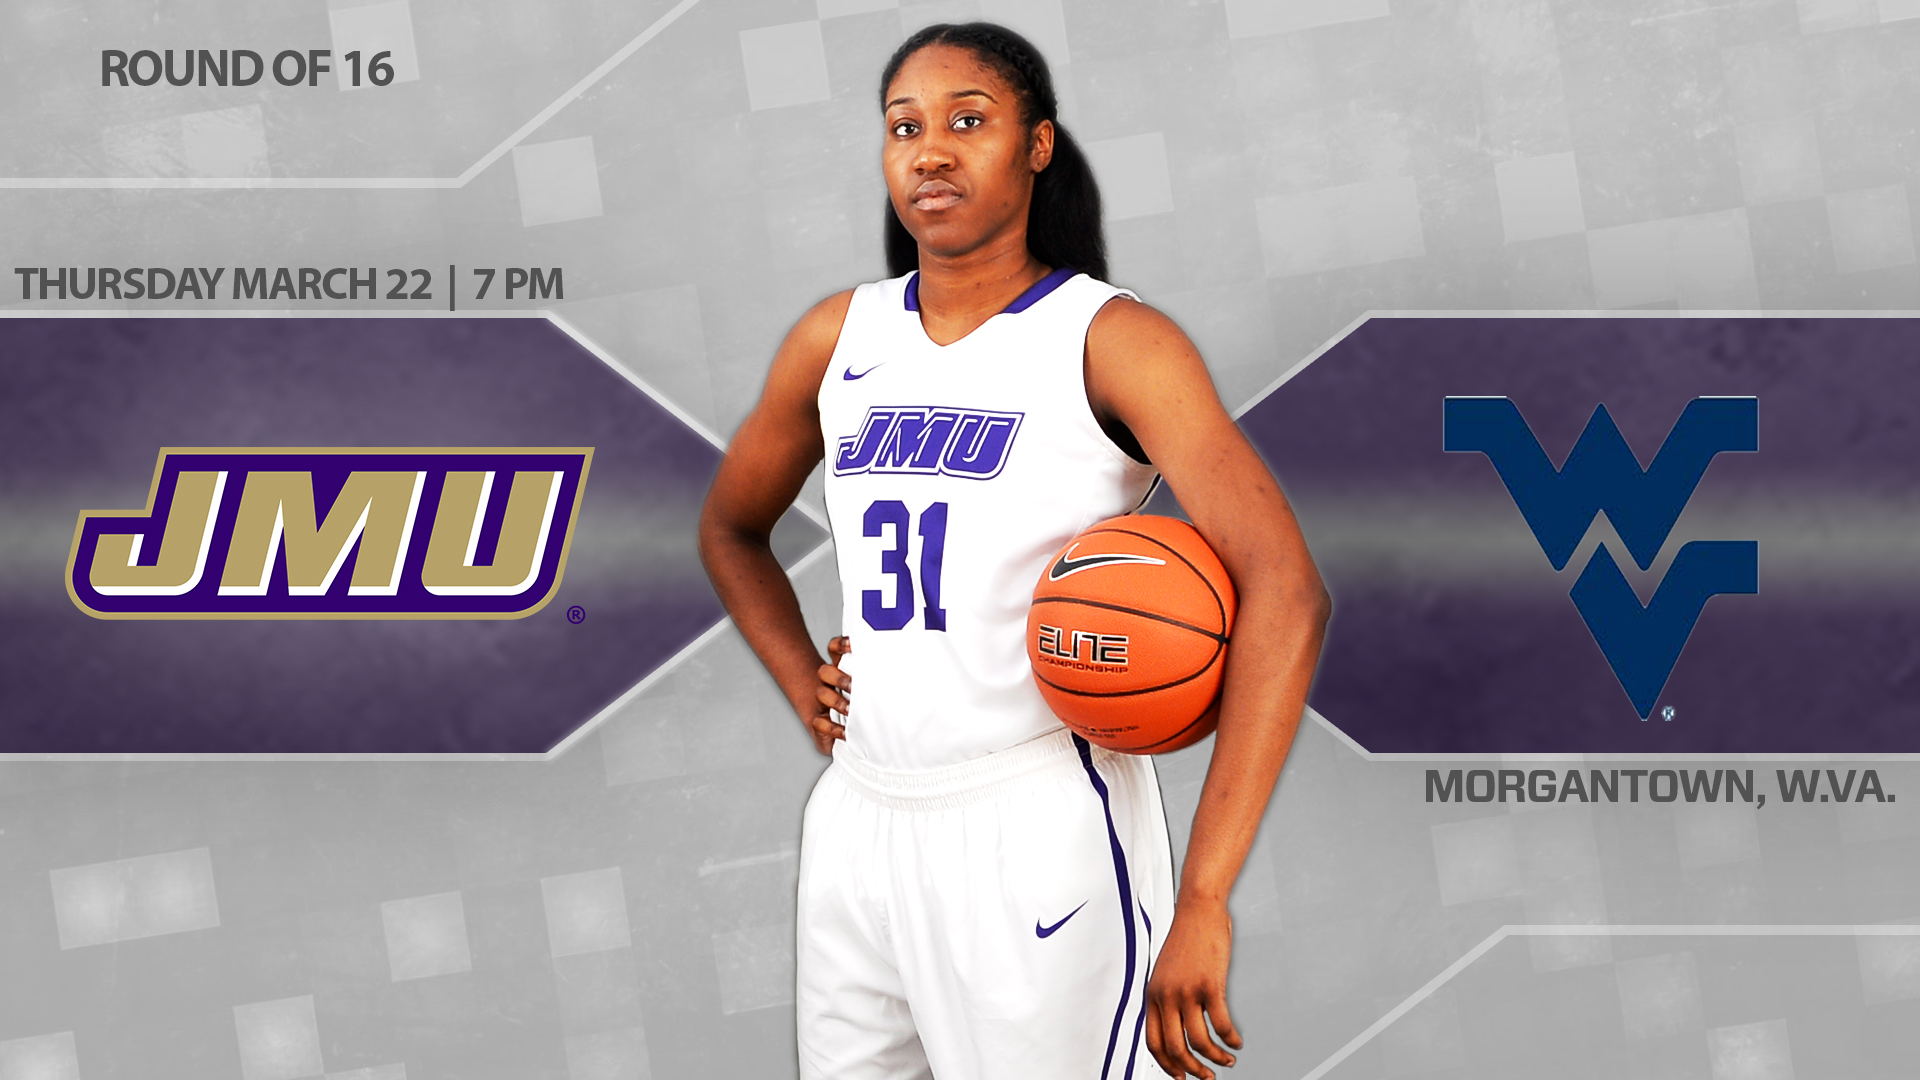 Women's Basketball: Dukes Travel to Morgantown for a WNIT Third-Round Matchup)